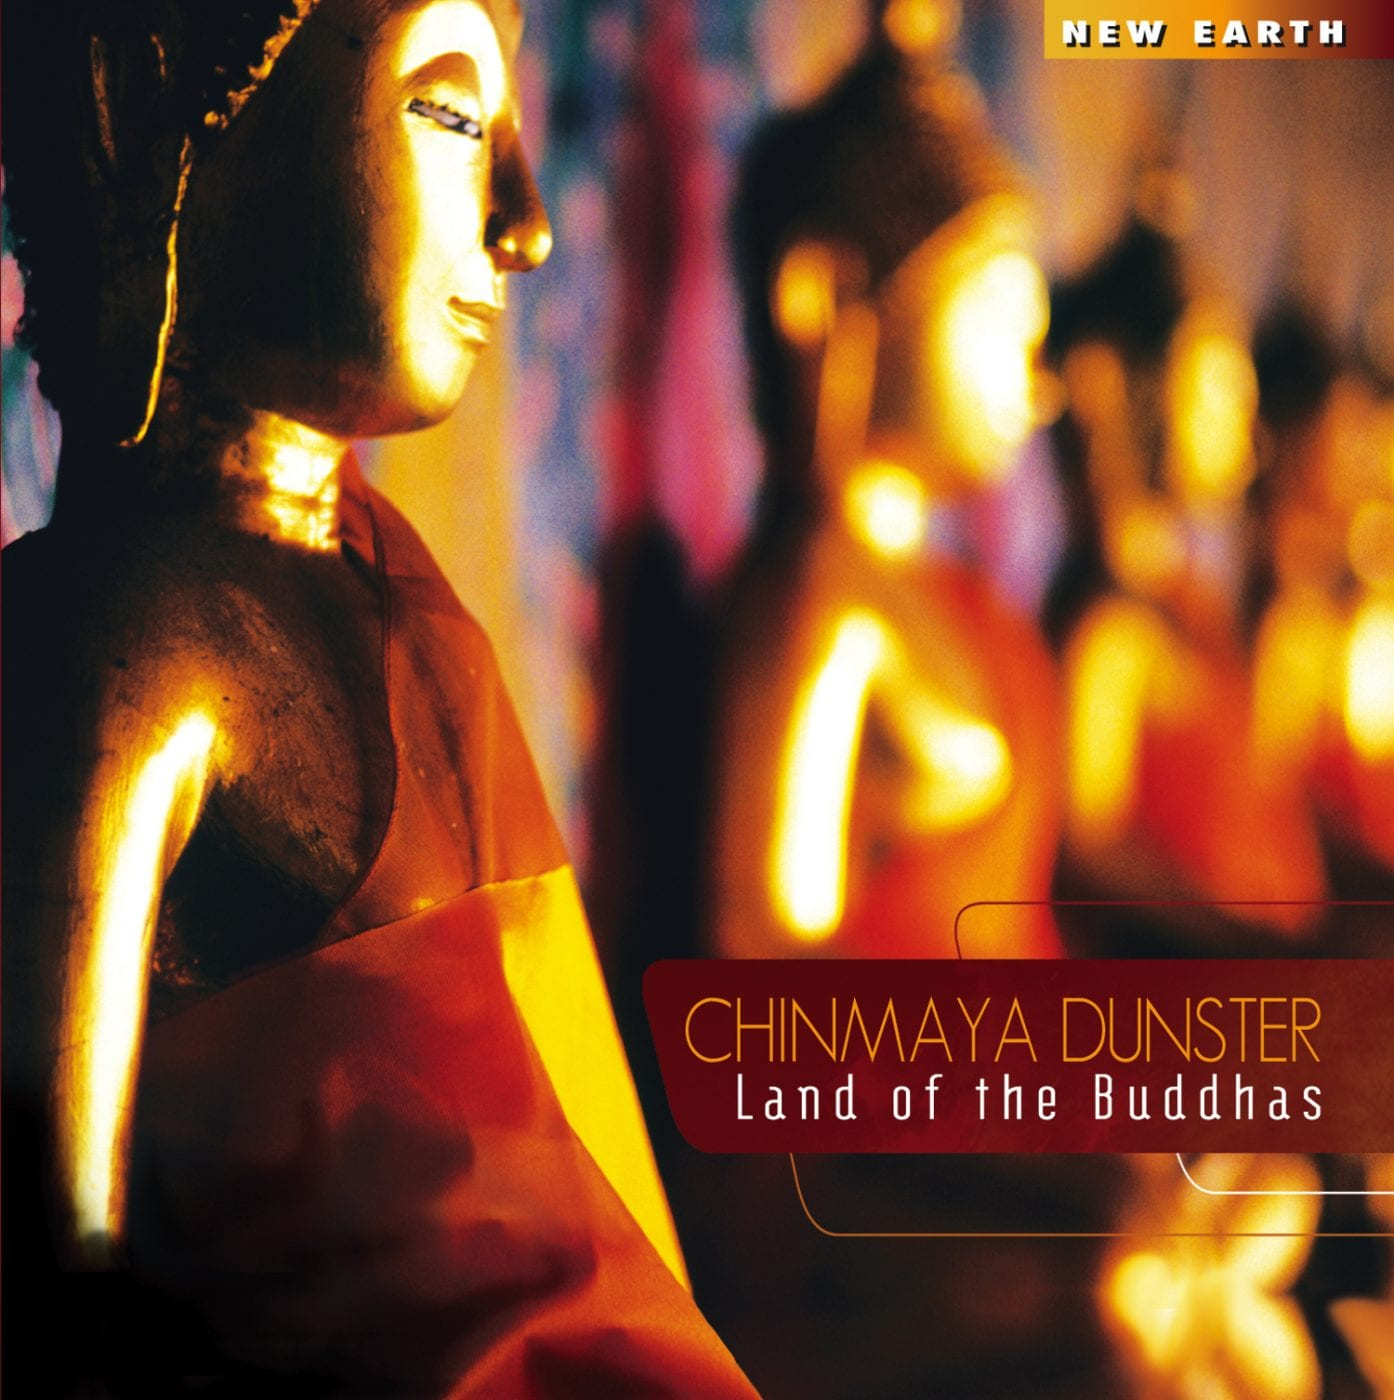 Land of the Buddhas